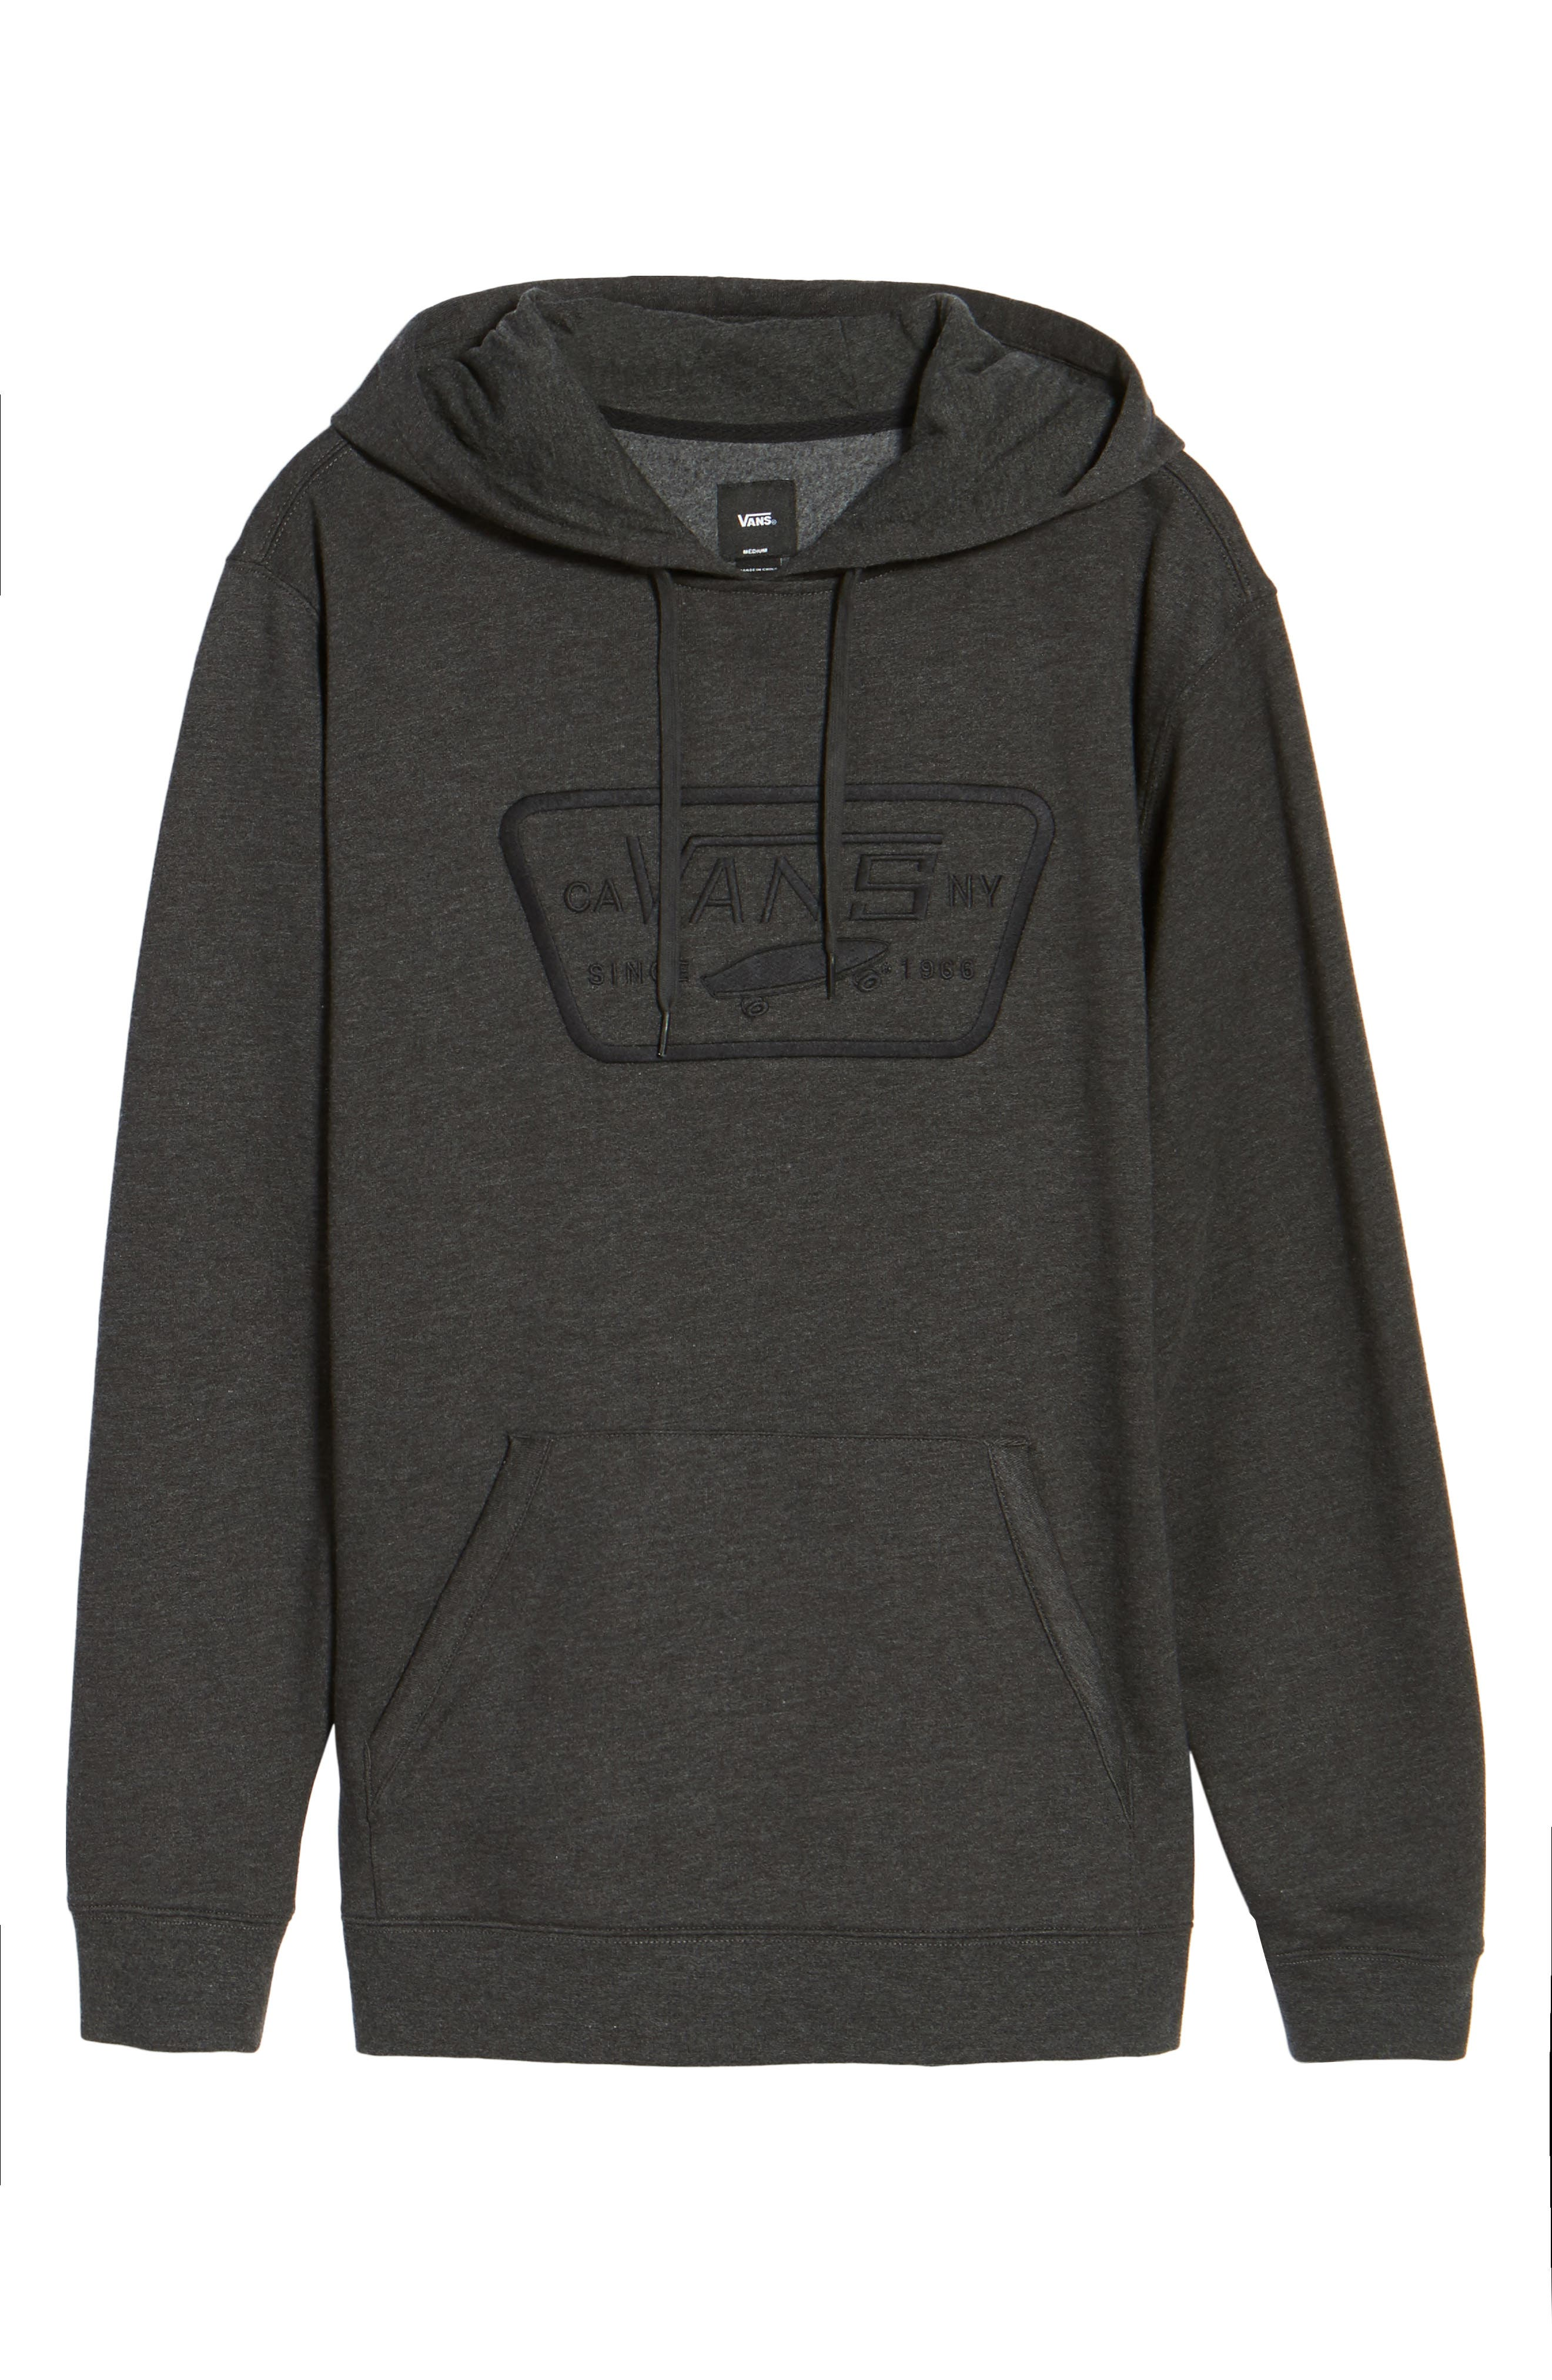 Full Patch Stitch Hoodie,                             Alternate thumbnail 6, color,                             001